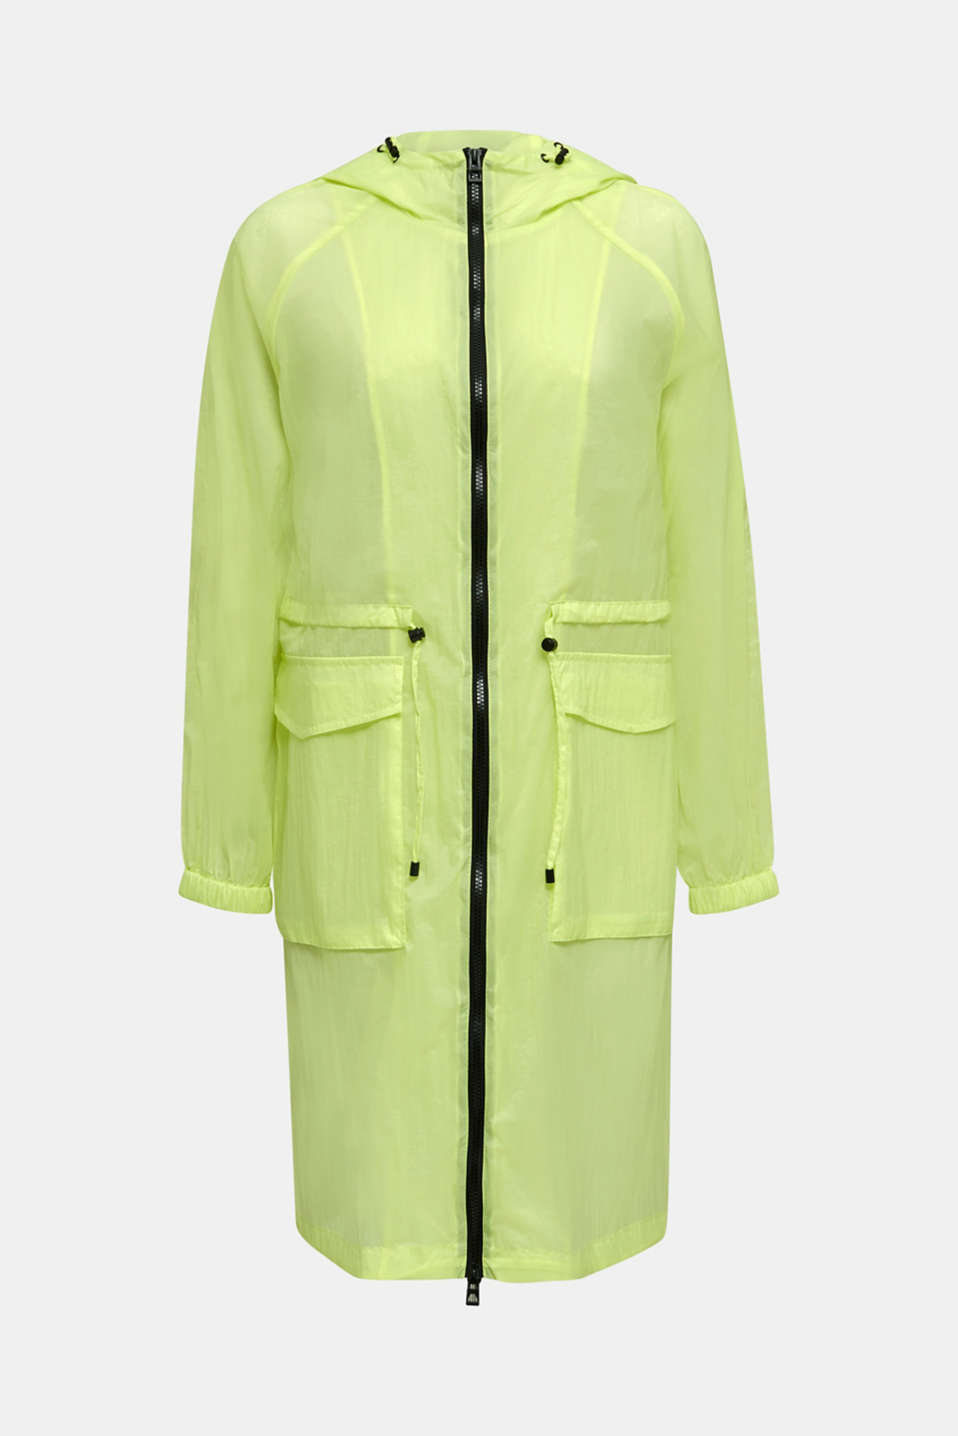 NEON ultra light long parka, LIME YELLOW, detail image number 6